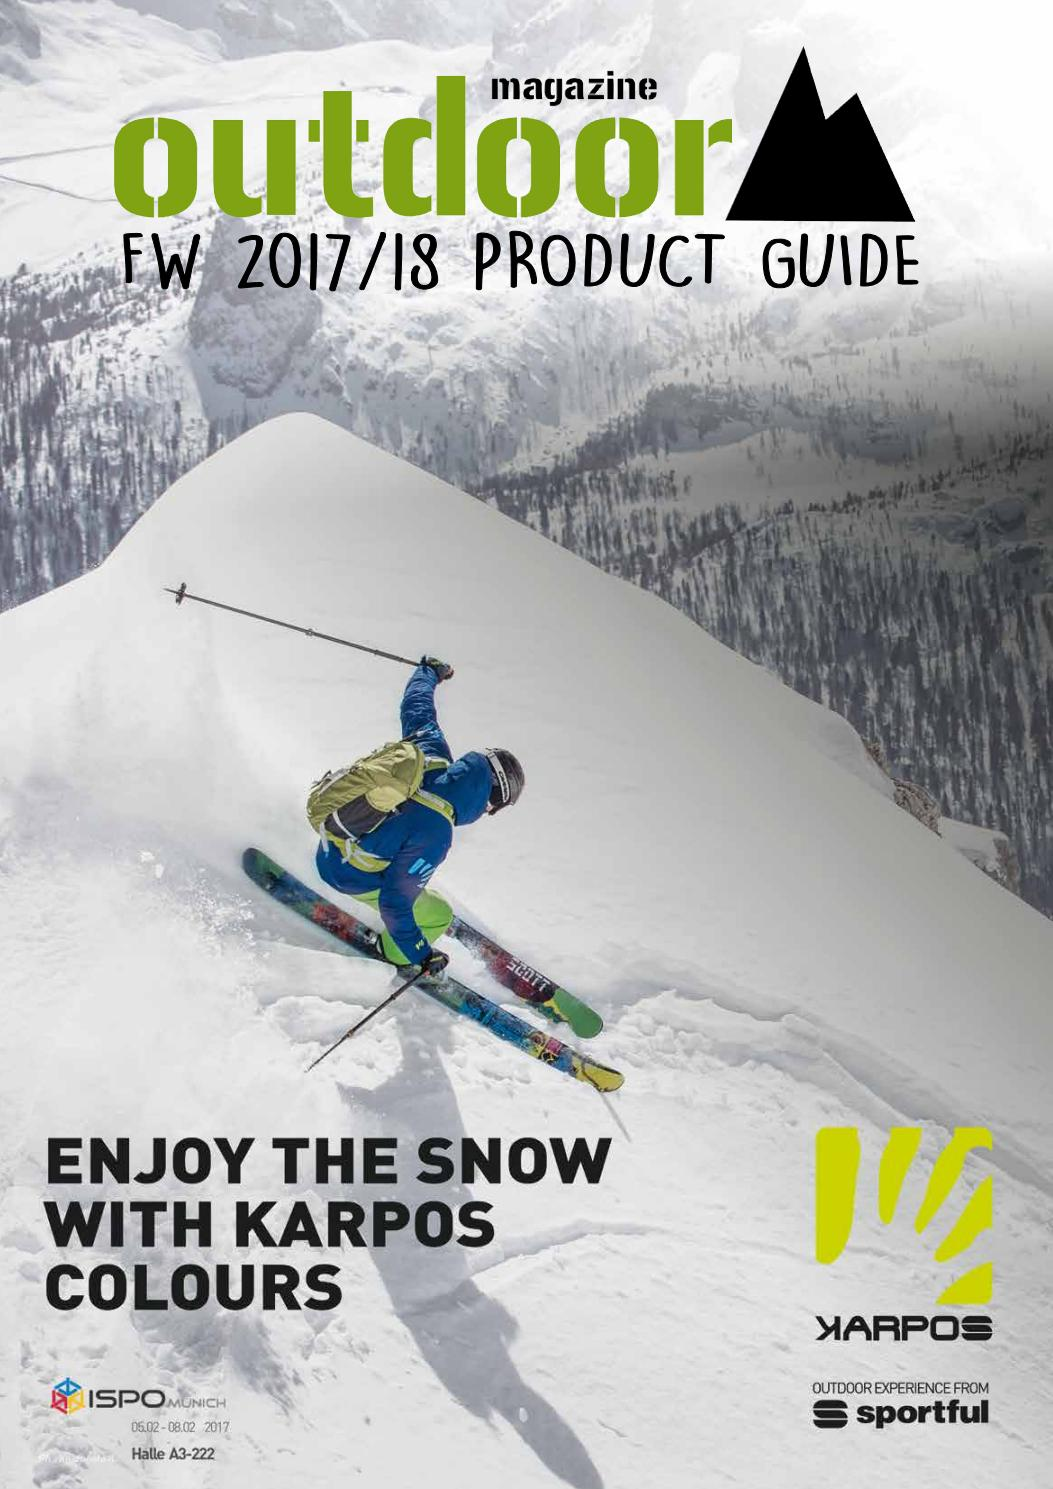 65c25d912e Product Guide 1 2017 by Sport Press - issuu